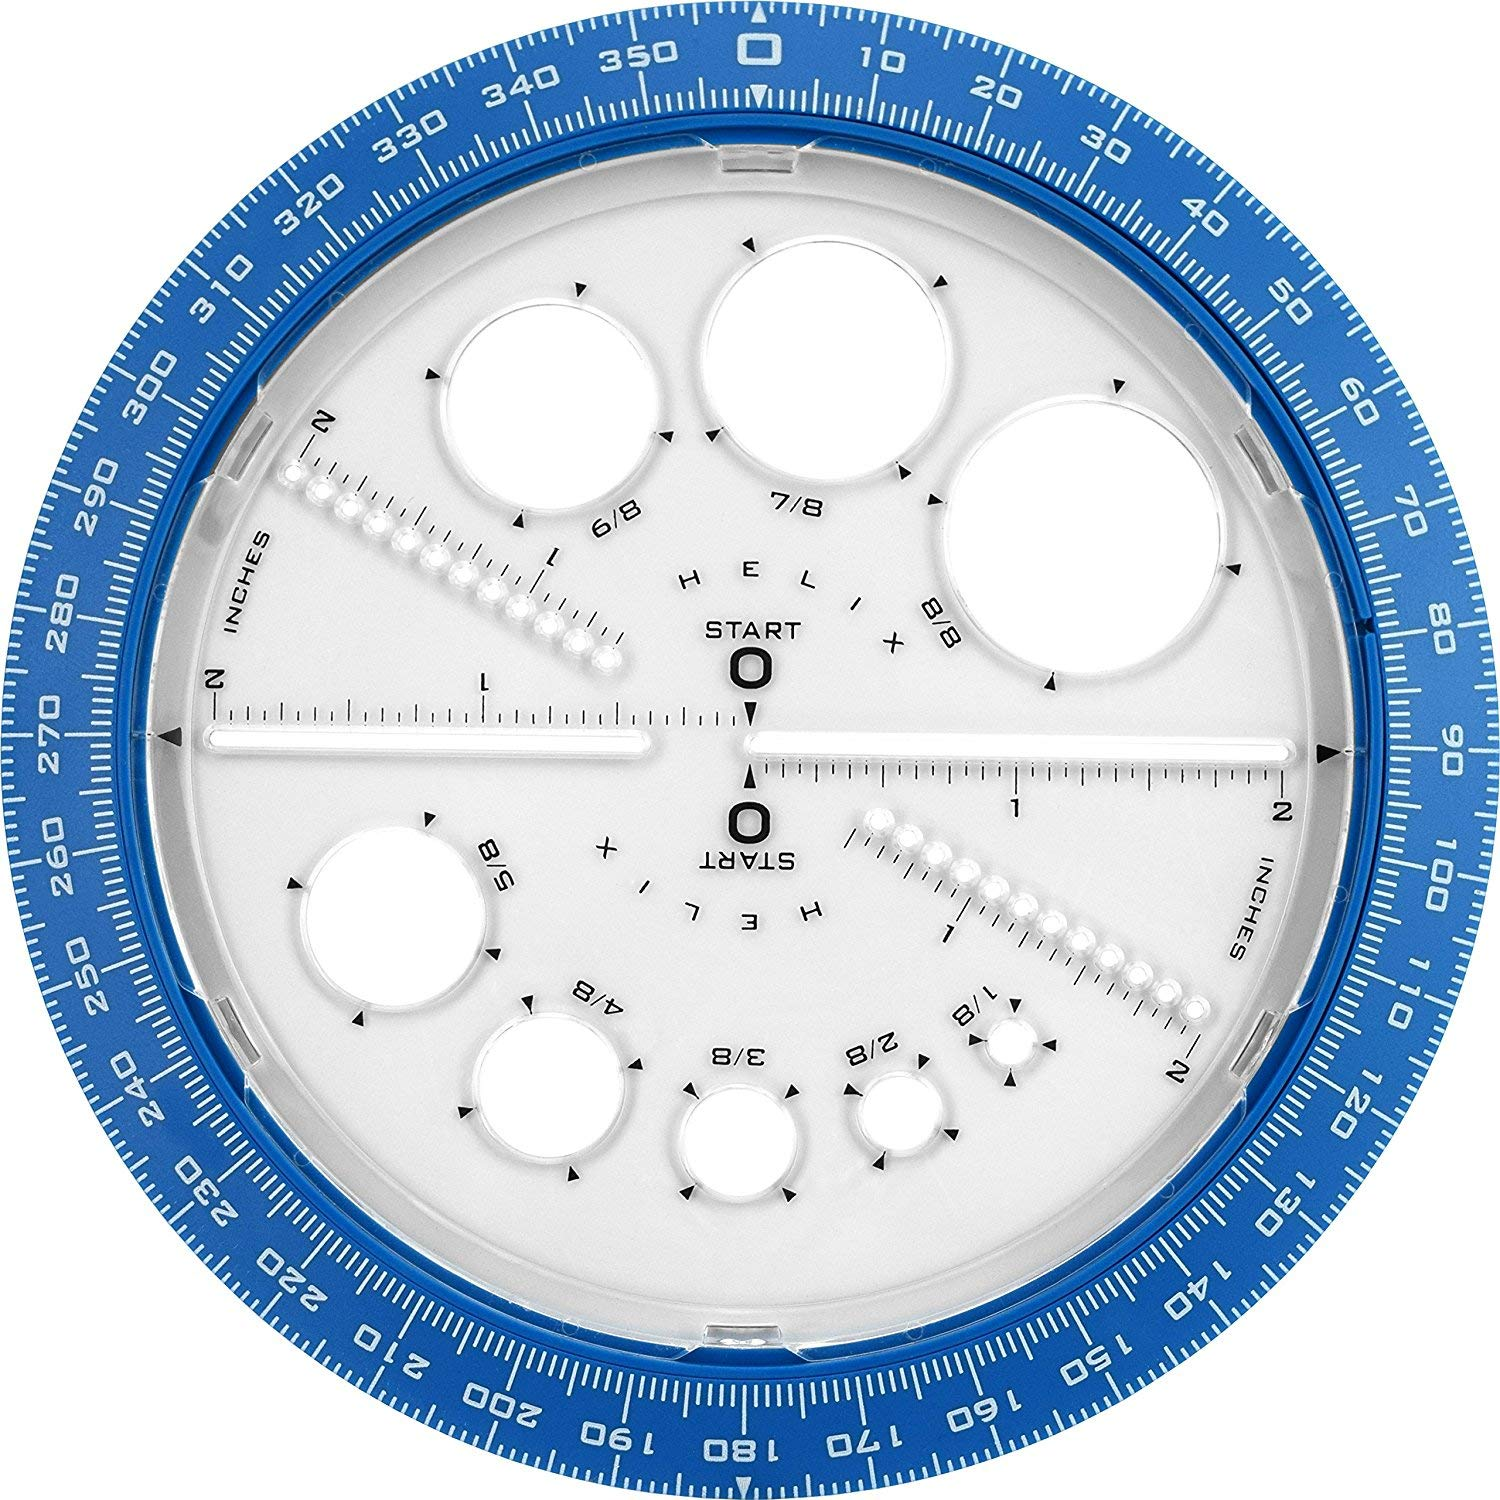 Helix 360° Angle and Circle Maker, Assorted Colors, 4 Pack by Maped Helix USA (Image #3)